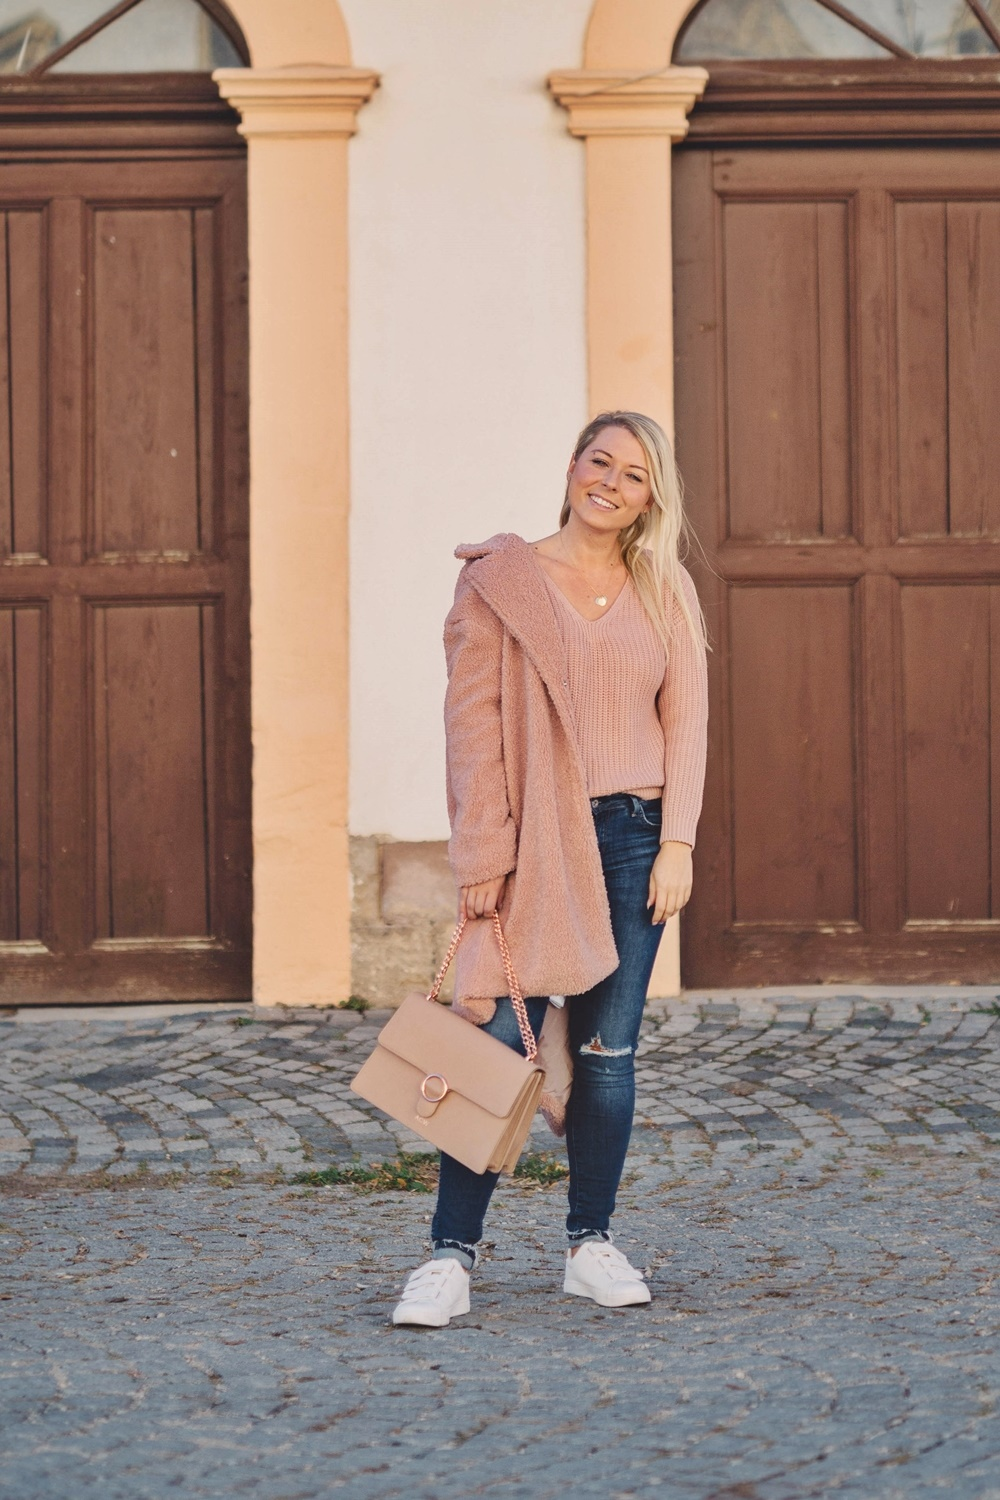 Cozy Winter Look - rosa Teddymantel, Strickpullover & Statement Tasche